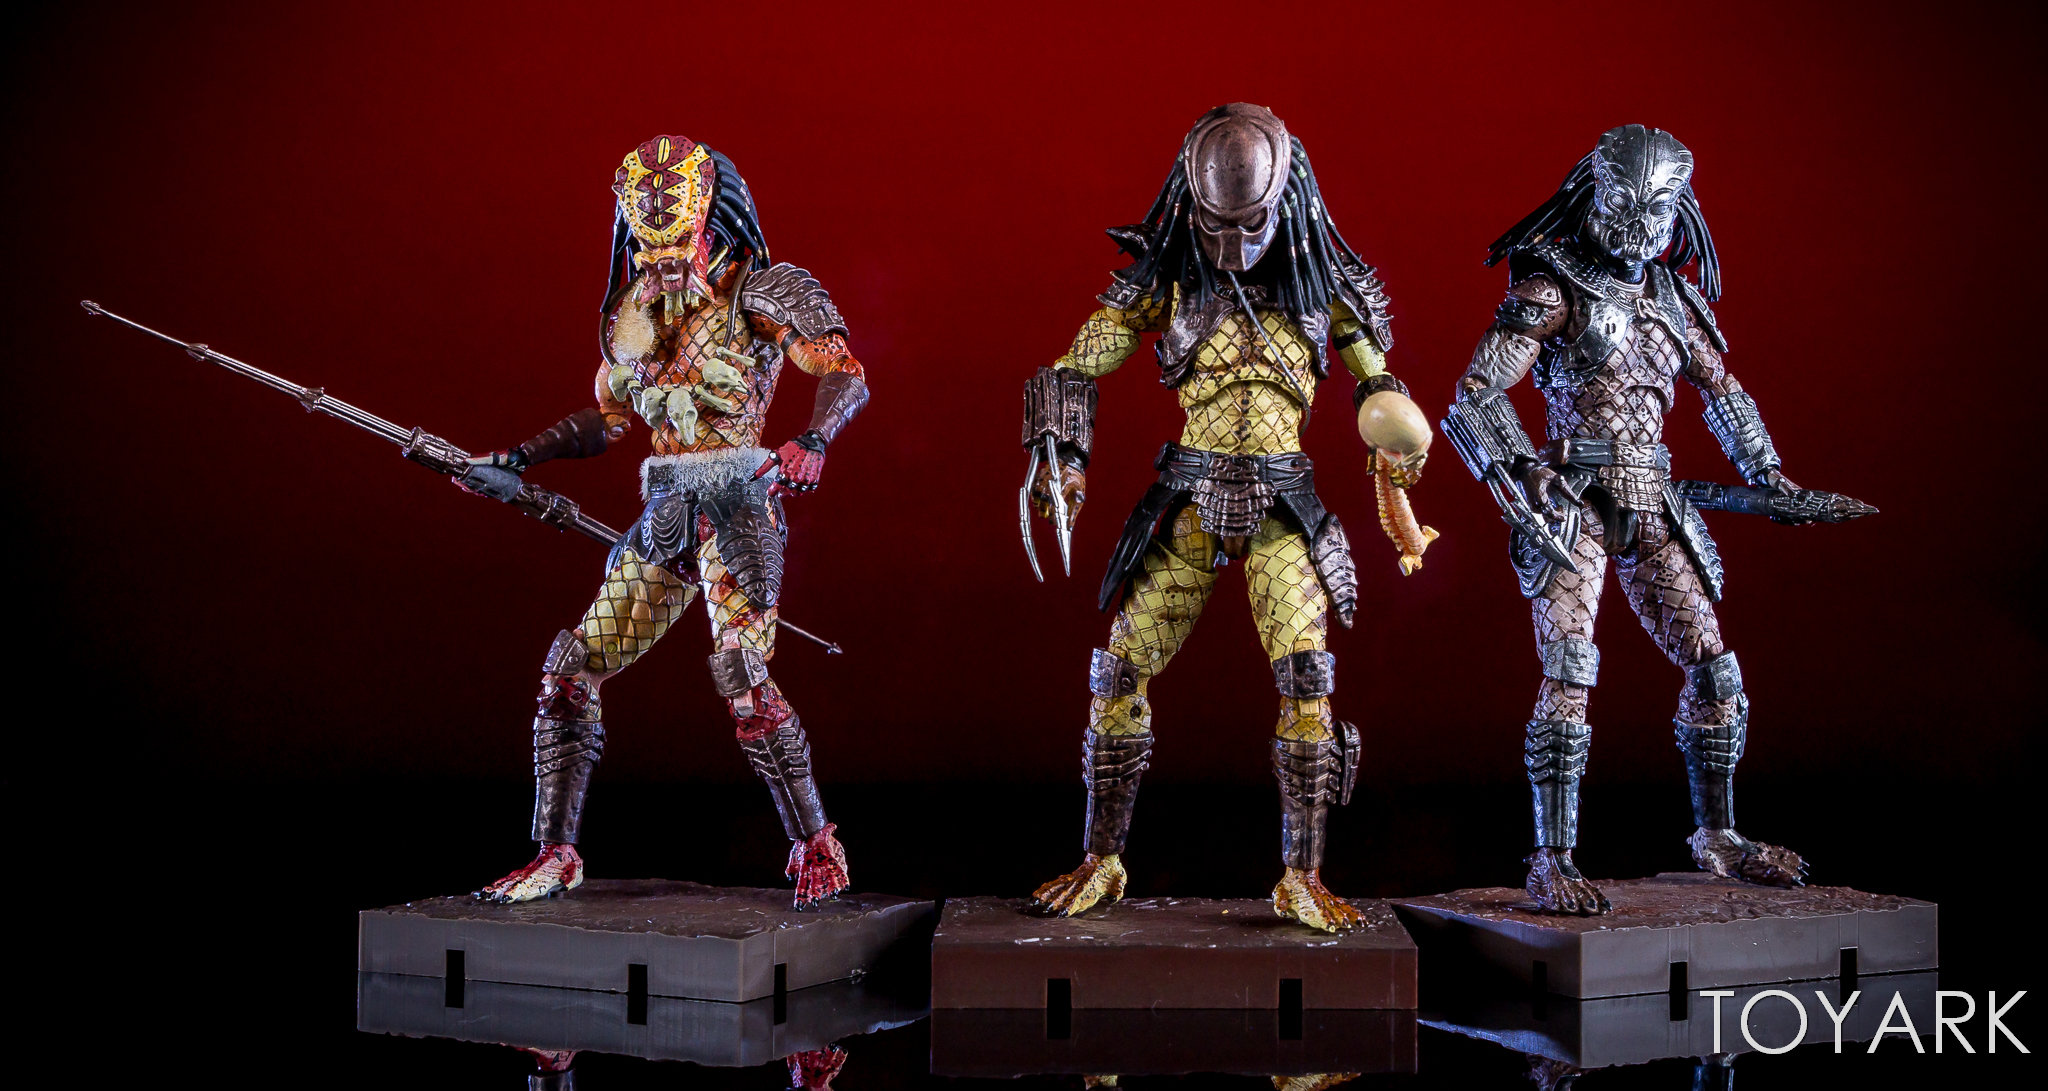 http://news.toyark.com/wp-content/uploads/sites/4/2018/03/Hiya-Predator-2-Figures-022.jpg